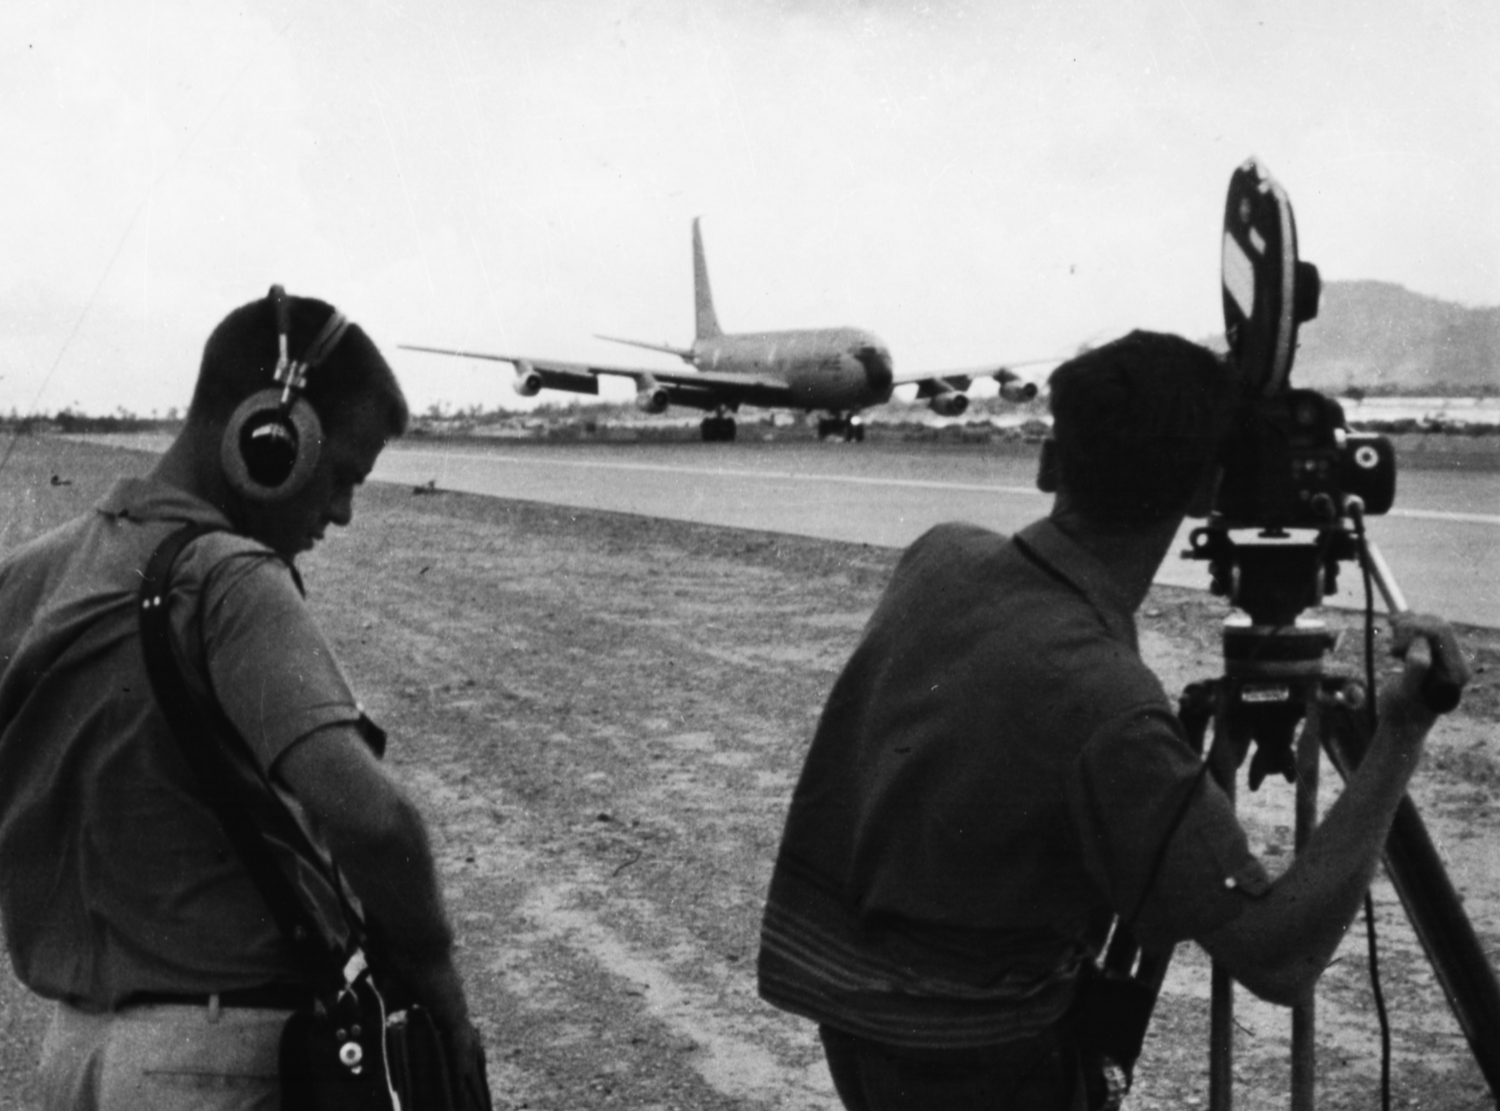 Two men stand at the end of a runway